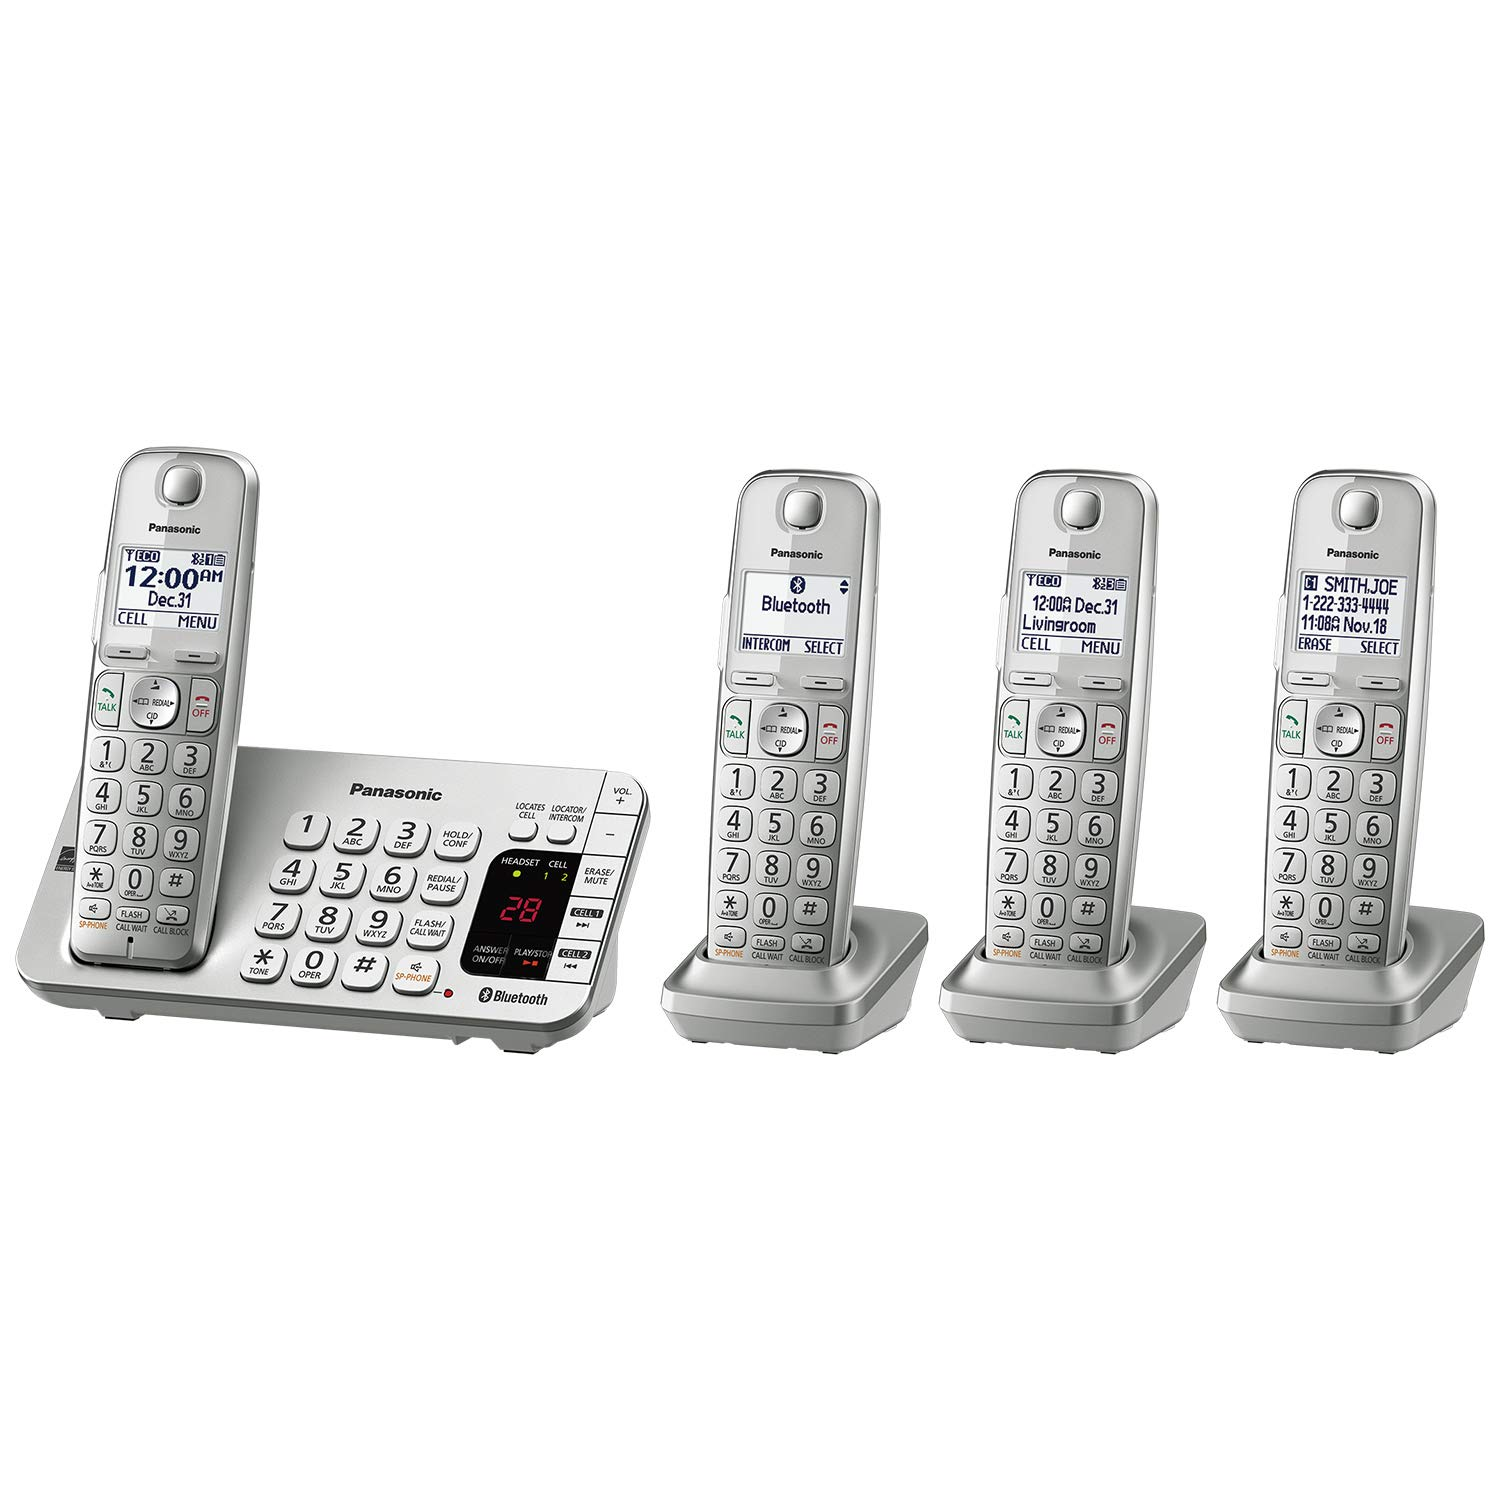 Bluetooth Cordless Phone System with Answering Machine